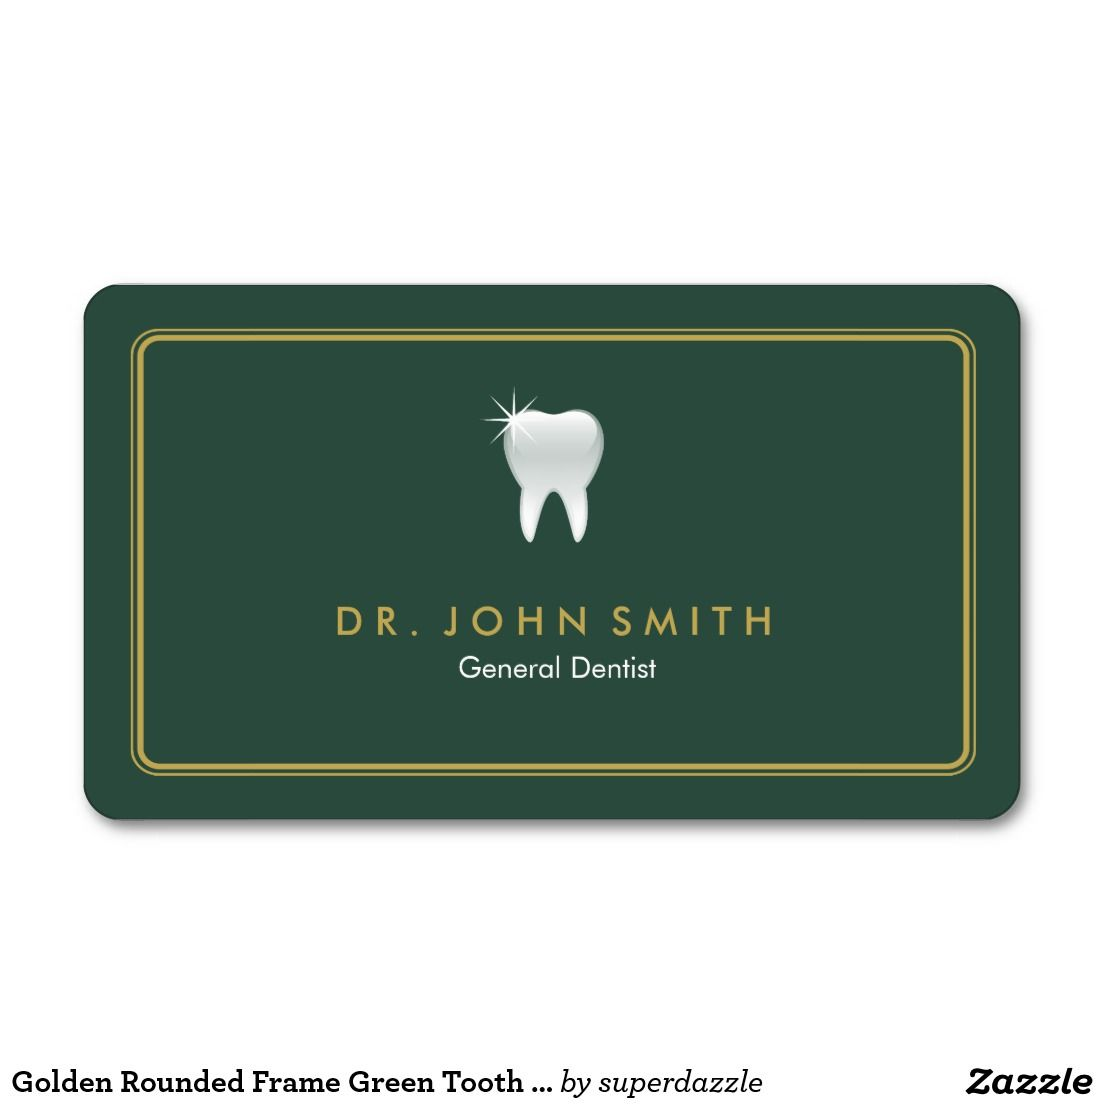 Dentist Golden Rounded Frame Green Tooth Dental Appointment Card